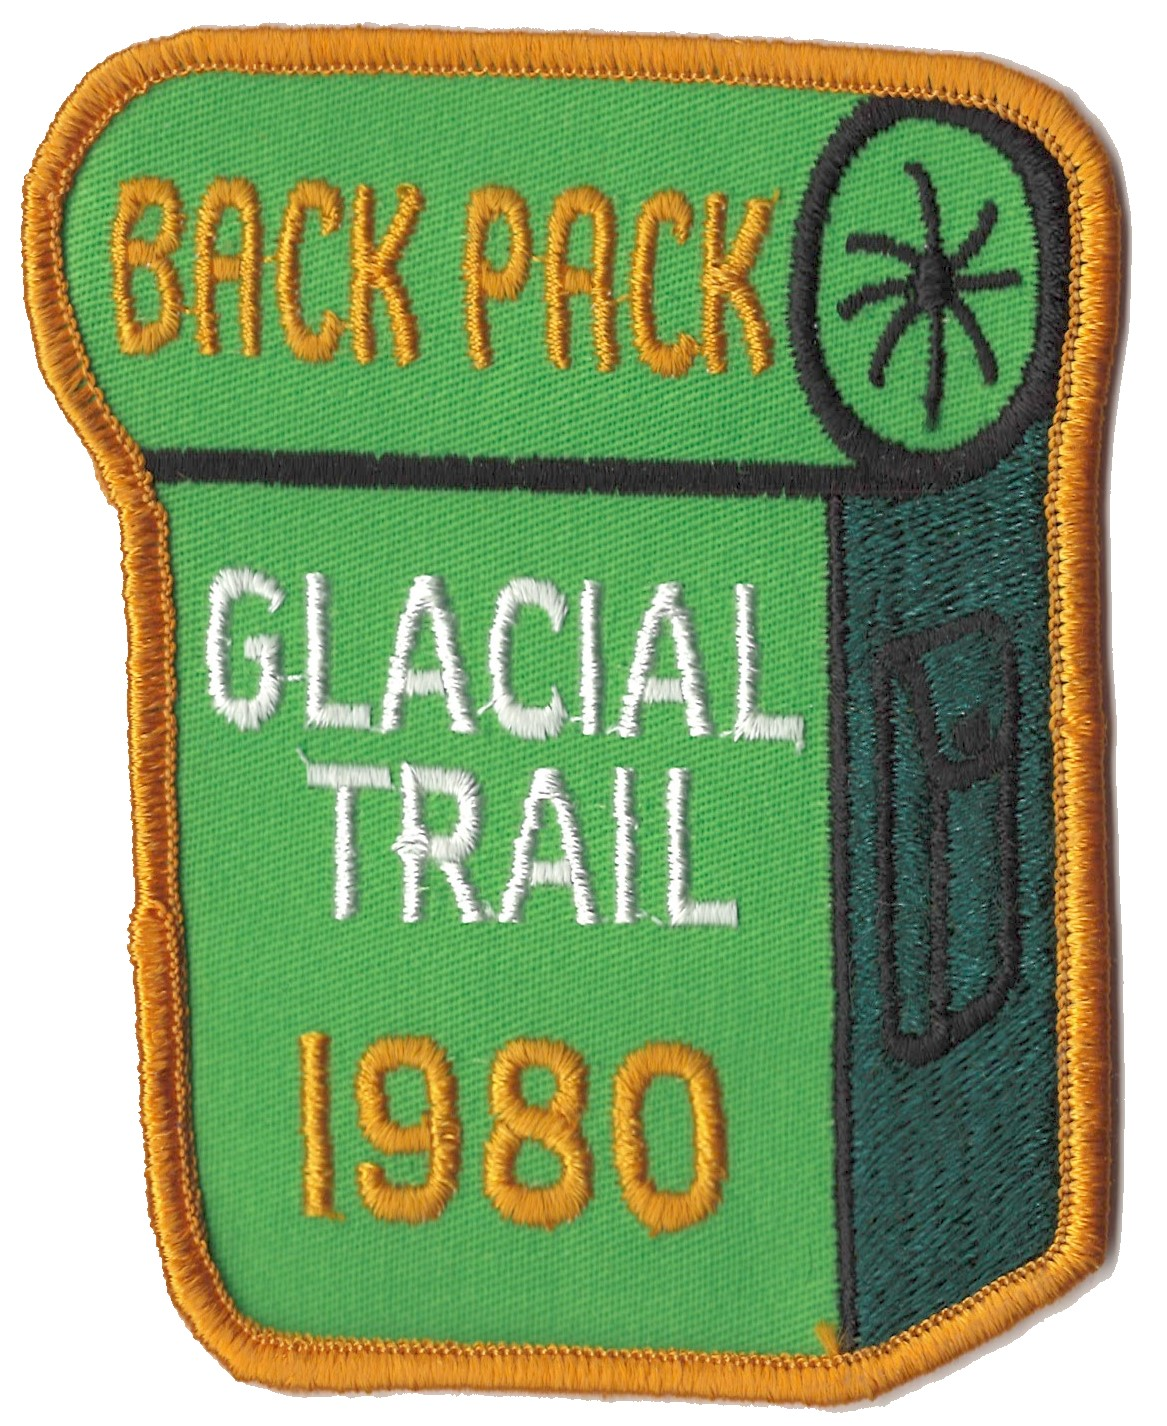 Badger Trails Glacial Trail Hike Patch 1980